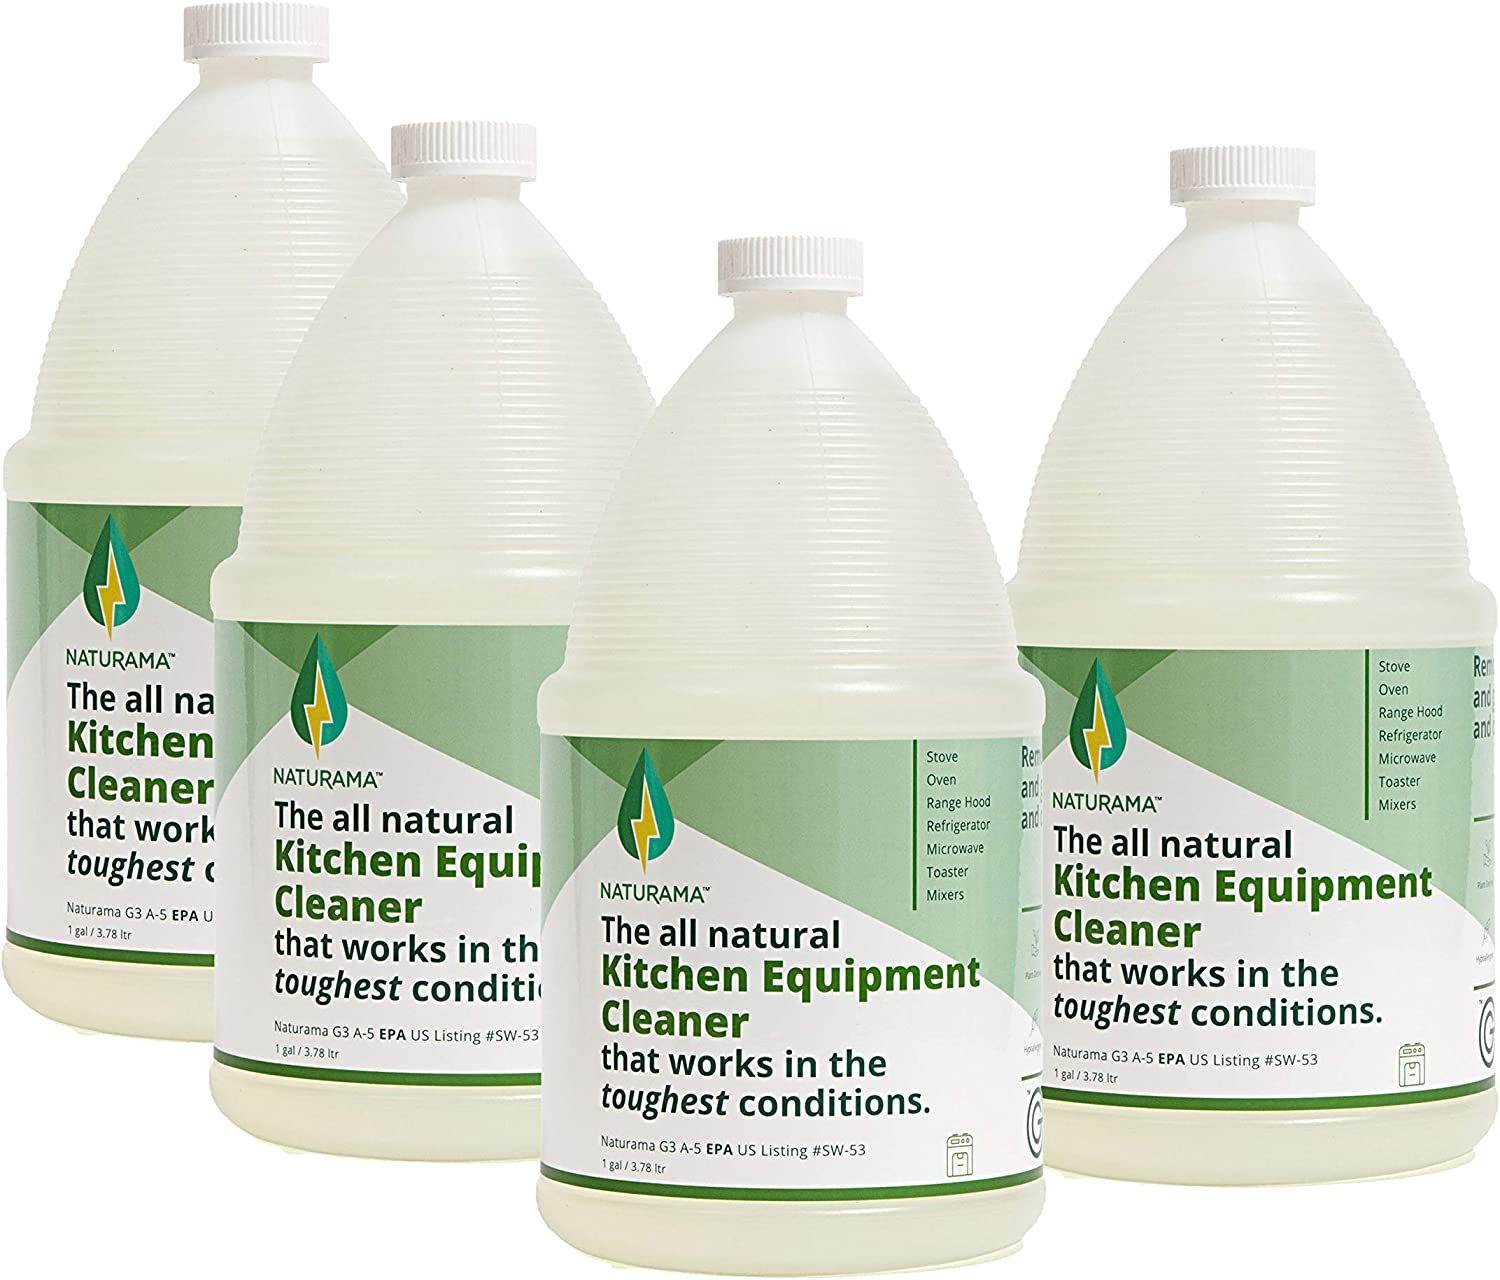 Naturama, All Natural Kitchen Equipment Cleaner, Eco-Friendly EPA Registered. Made in the U.S. (1gal 4 Pack)